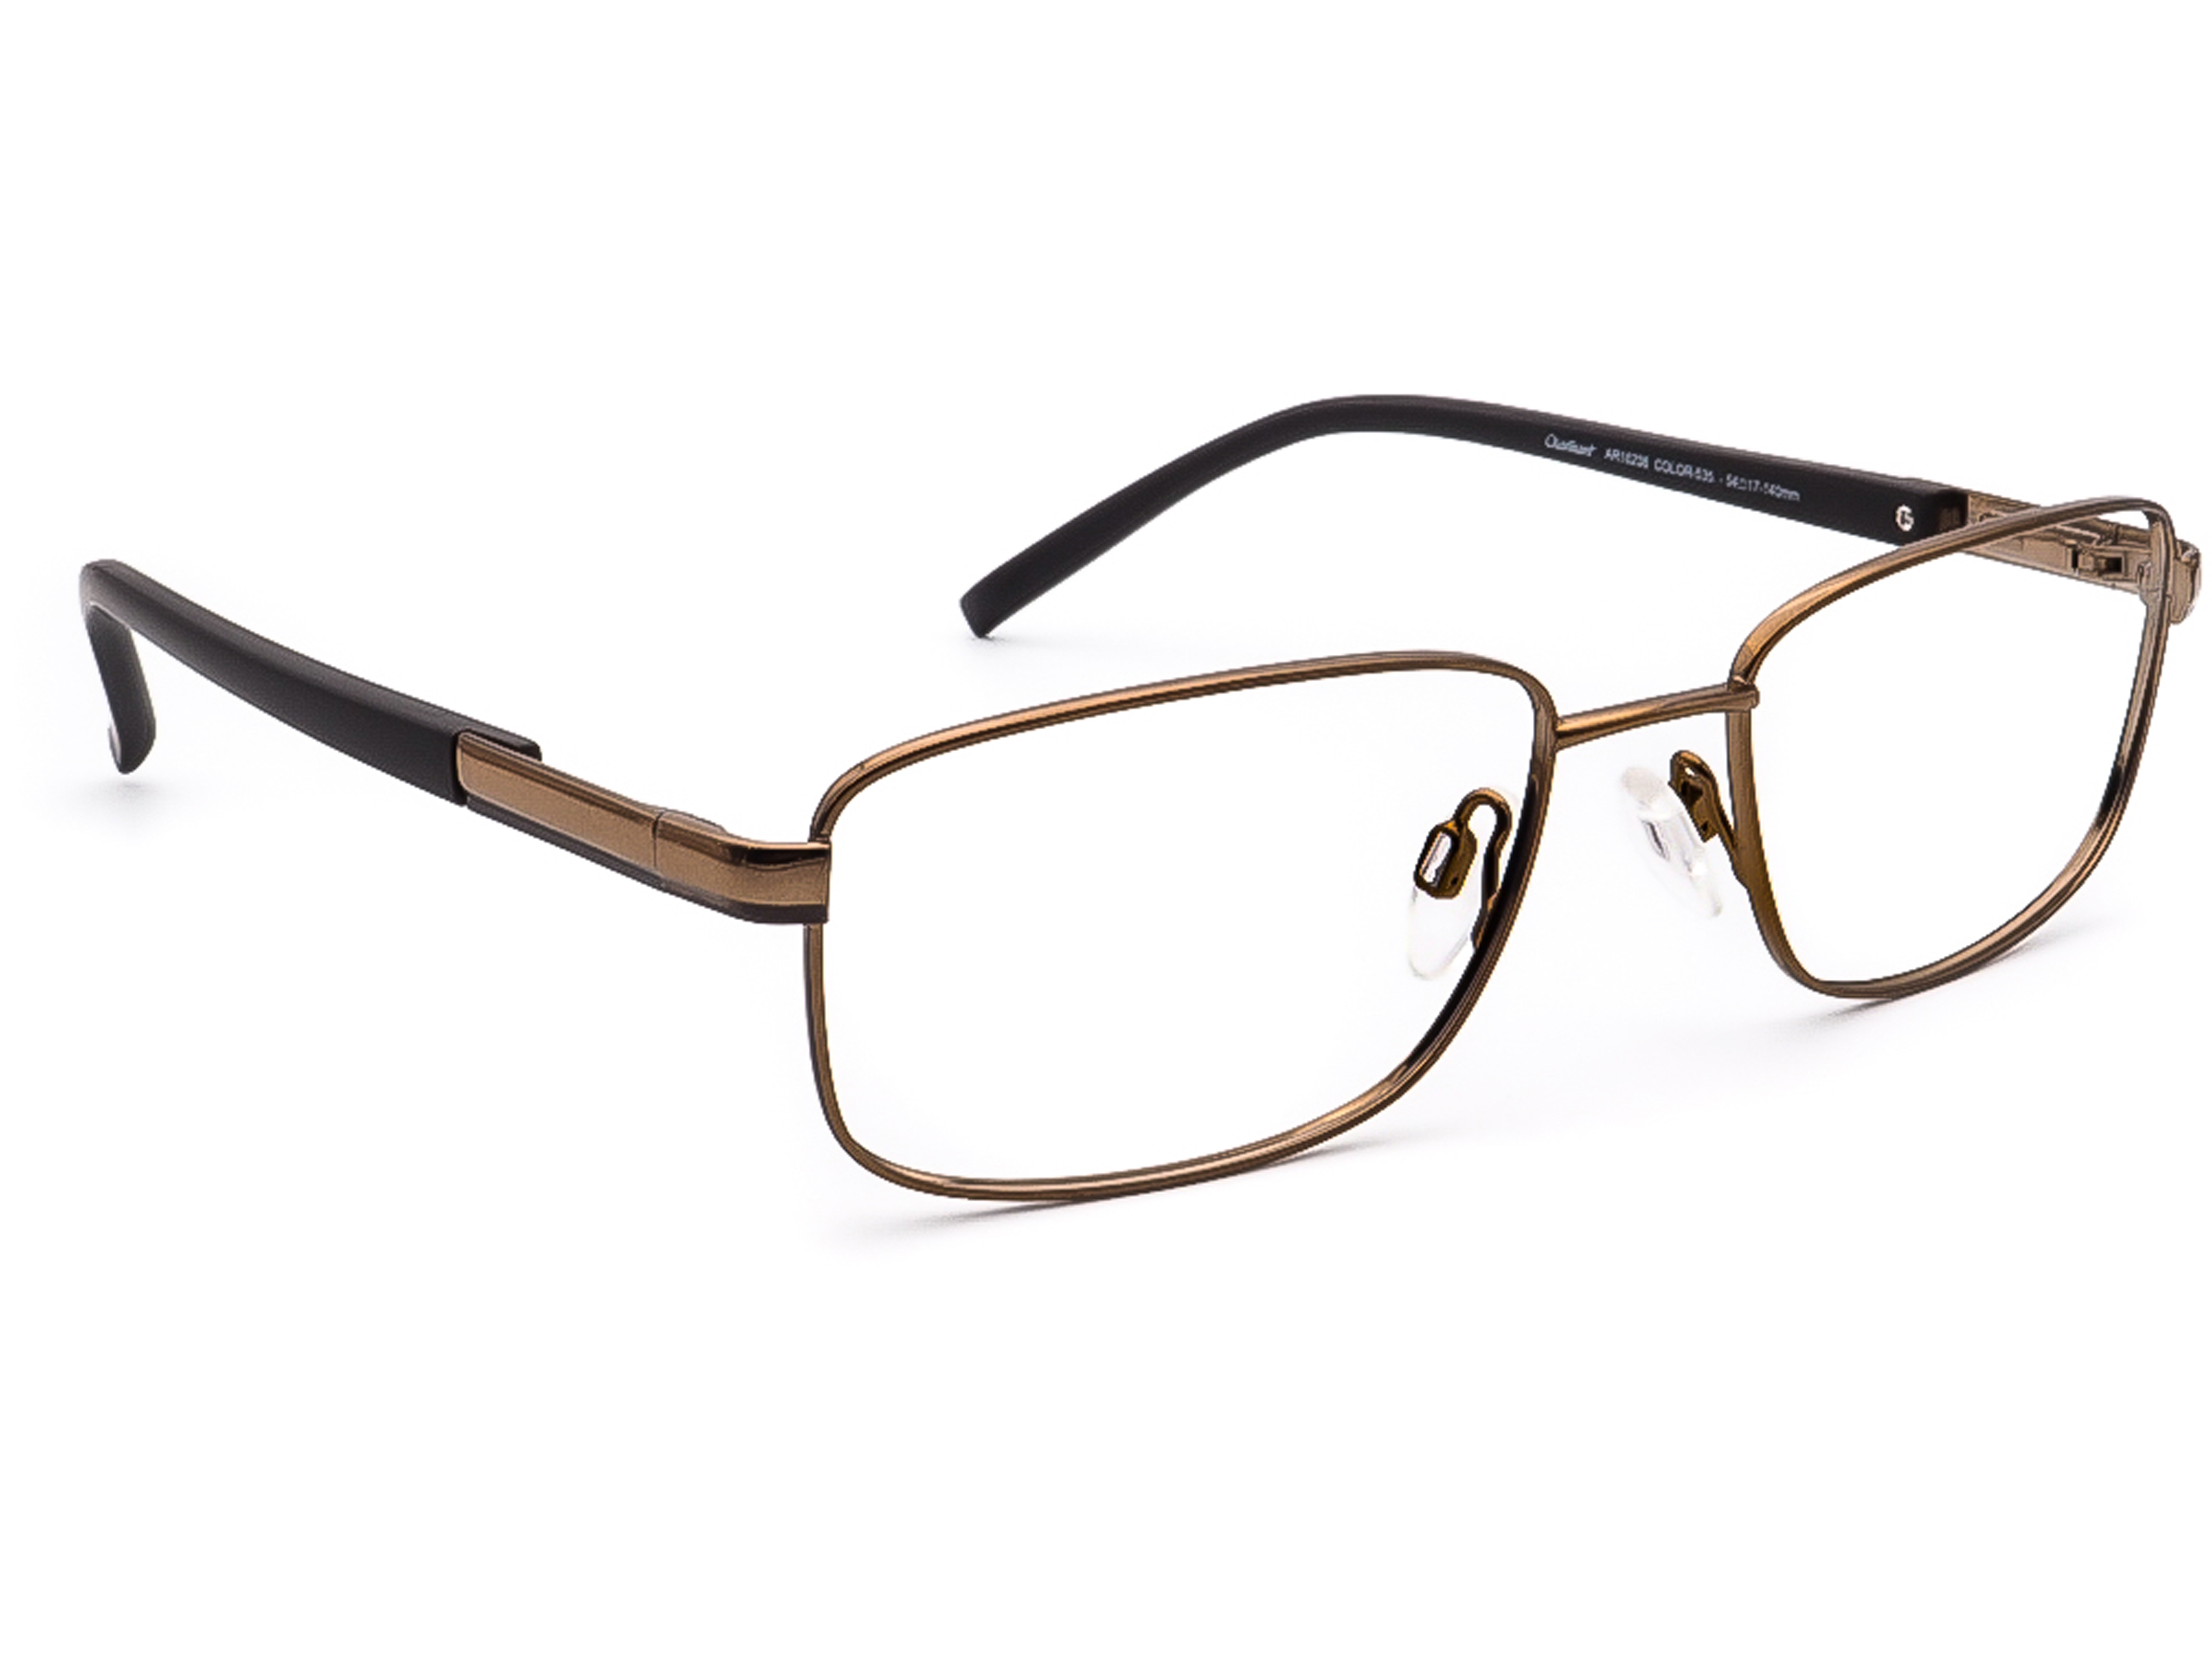 Charmant Aristar AR16236 Color-535 Eyeglasses